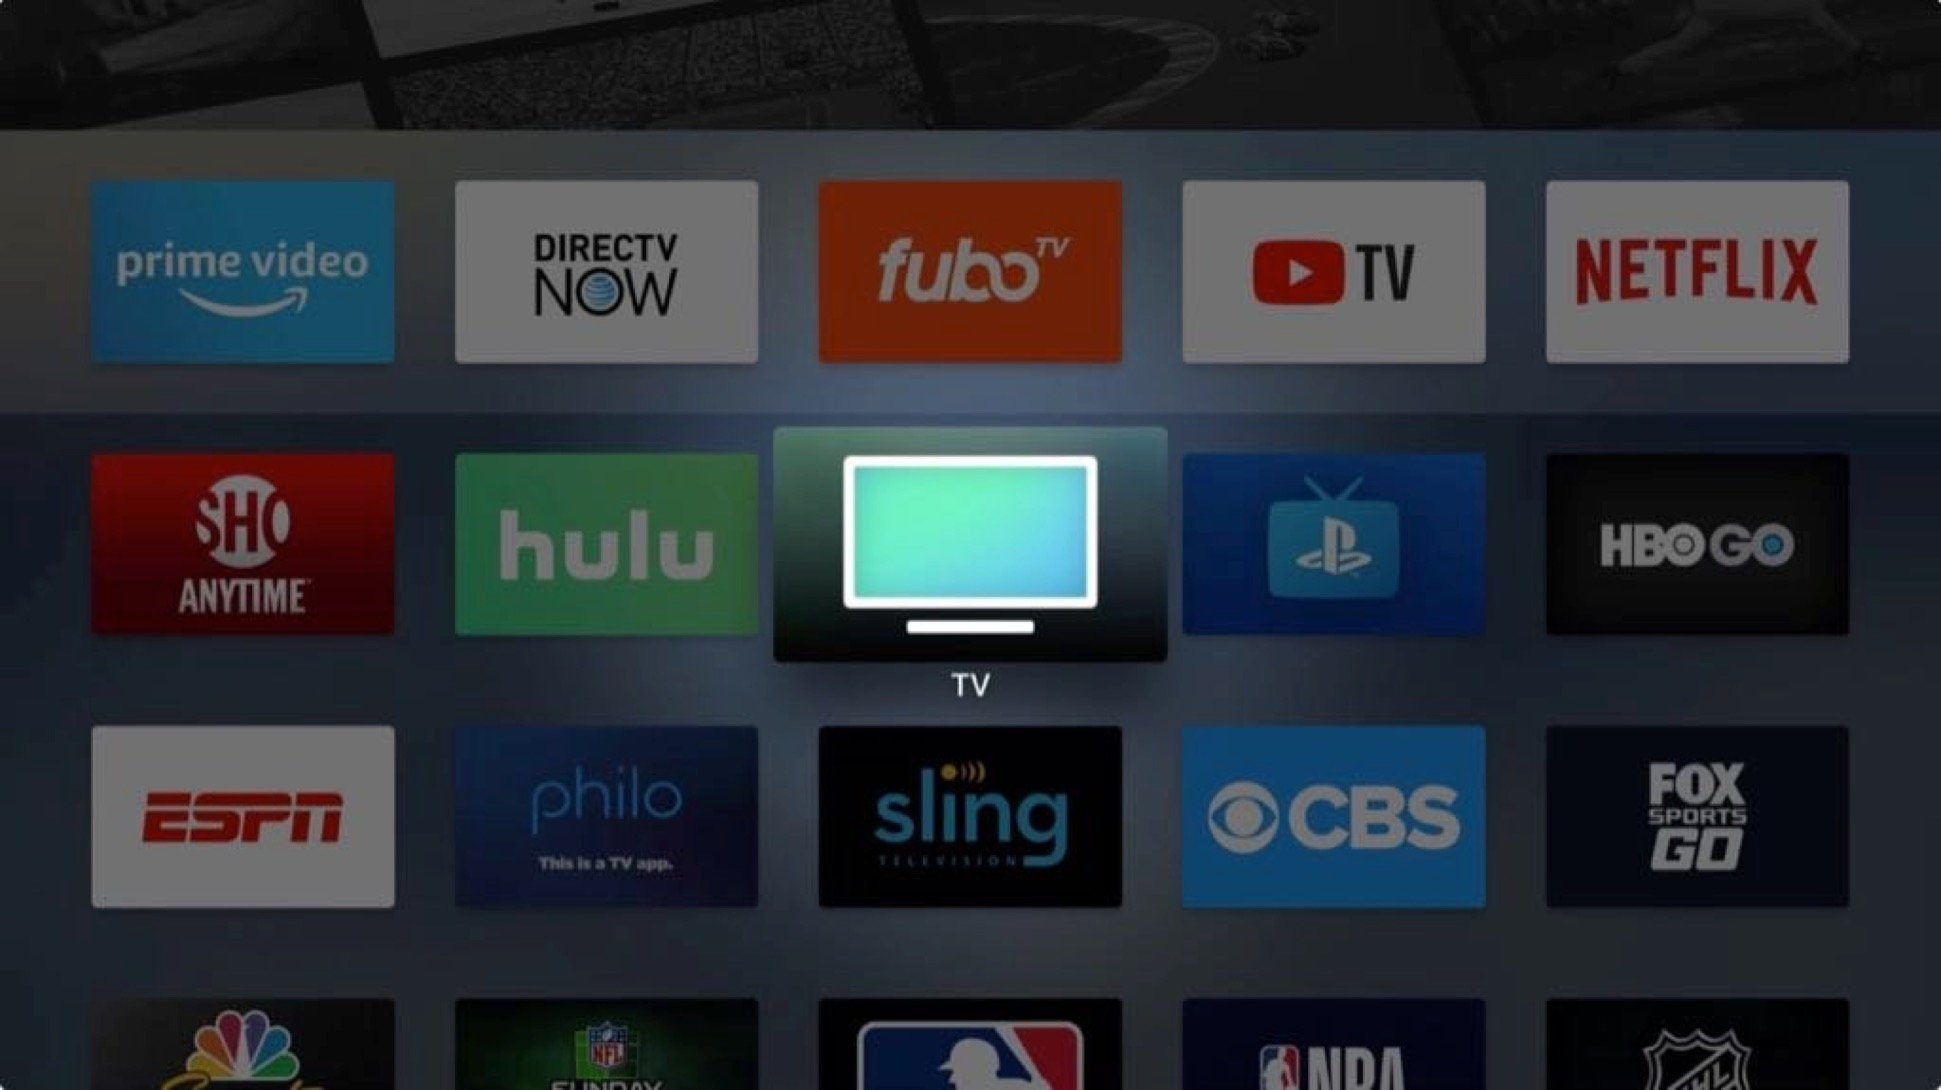 Top U.S. Streaming Services Expected to Add Almost 100 Million New Subscriptions By 2025